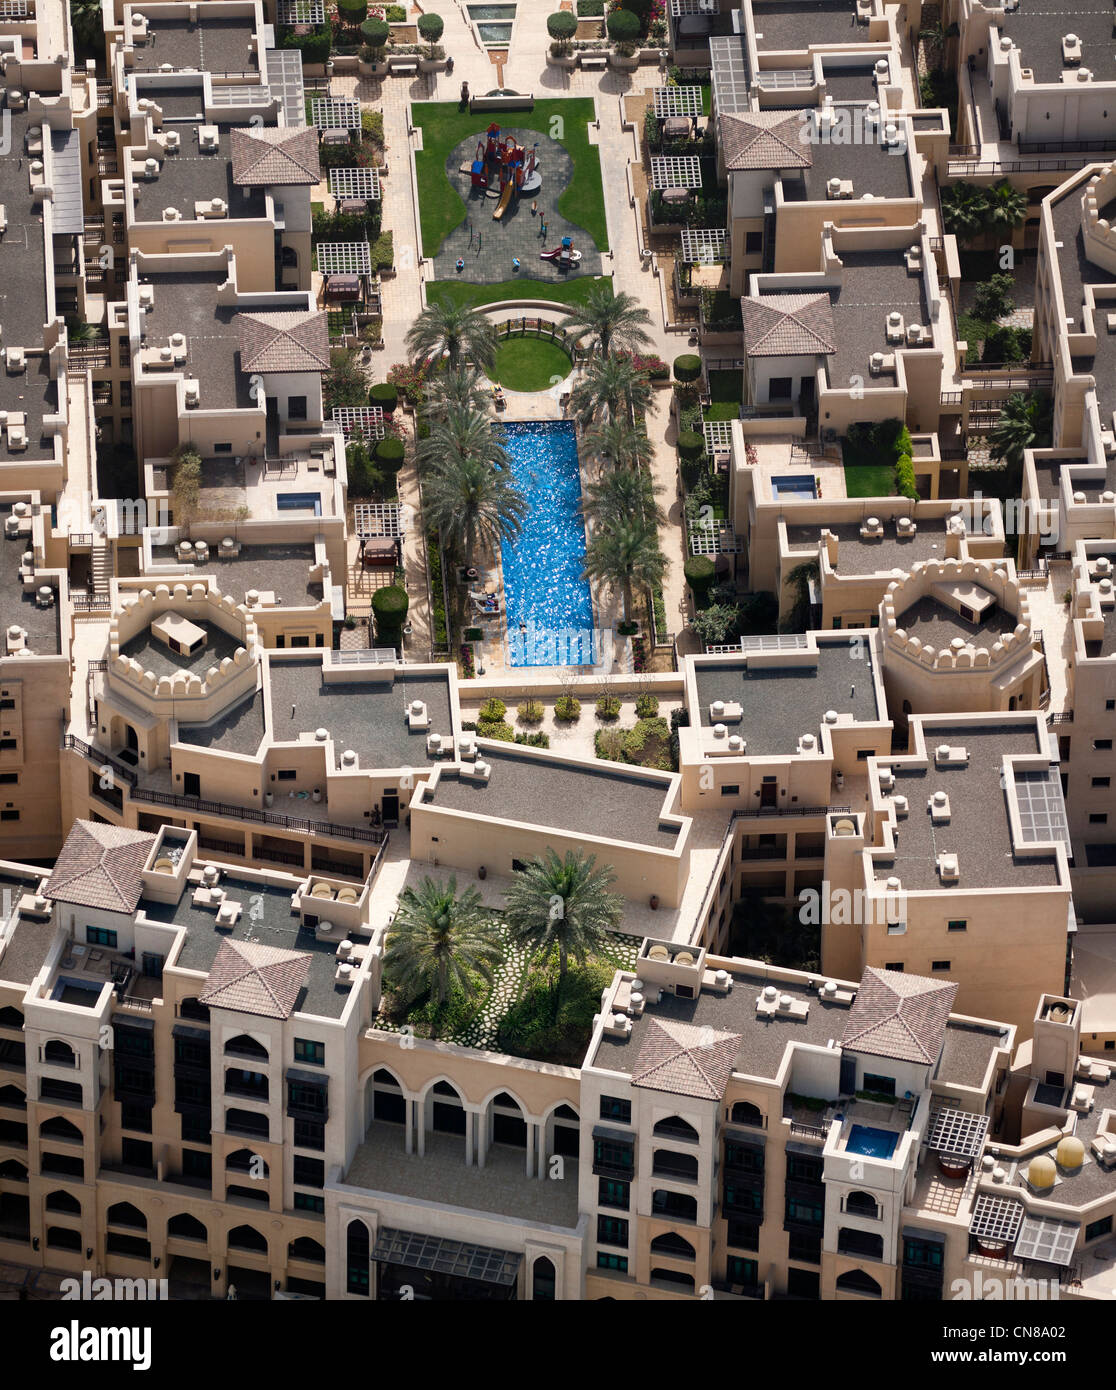 The residential area of Downtown Dubai (The United Arab